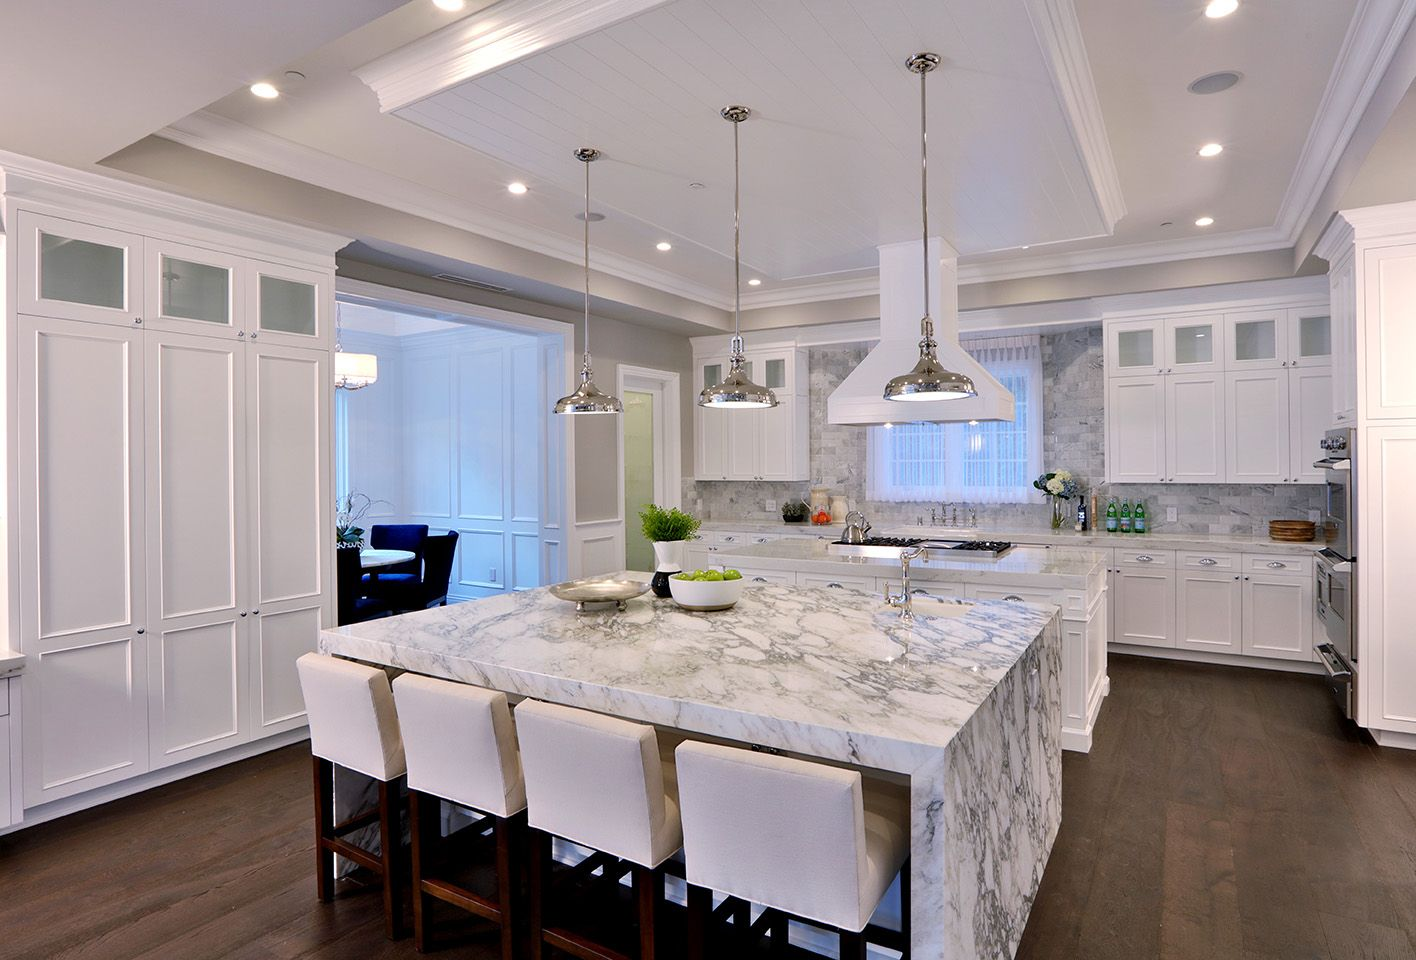 exclusive sink and cabinets in ultramodern kitchen | Luxury modern white kitchen with marble island | White ...